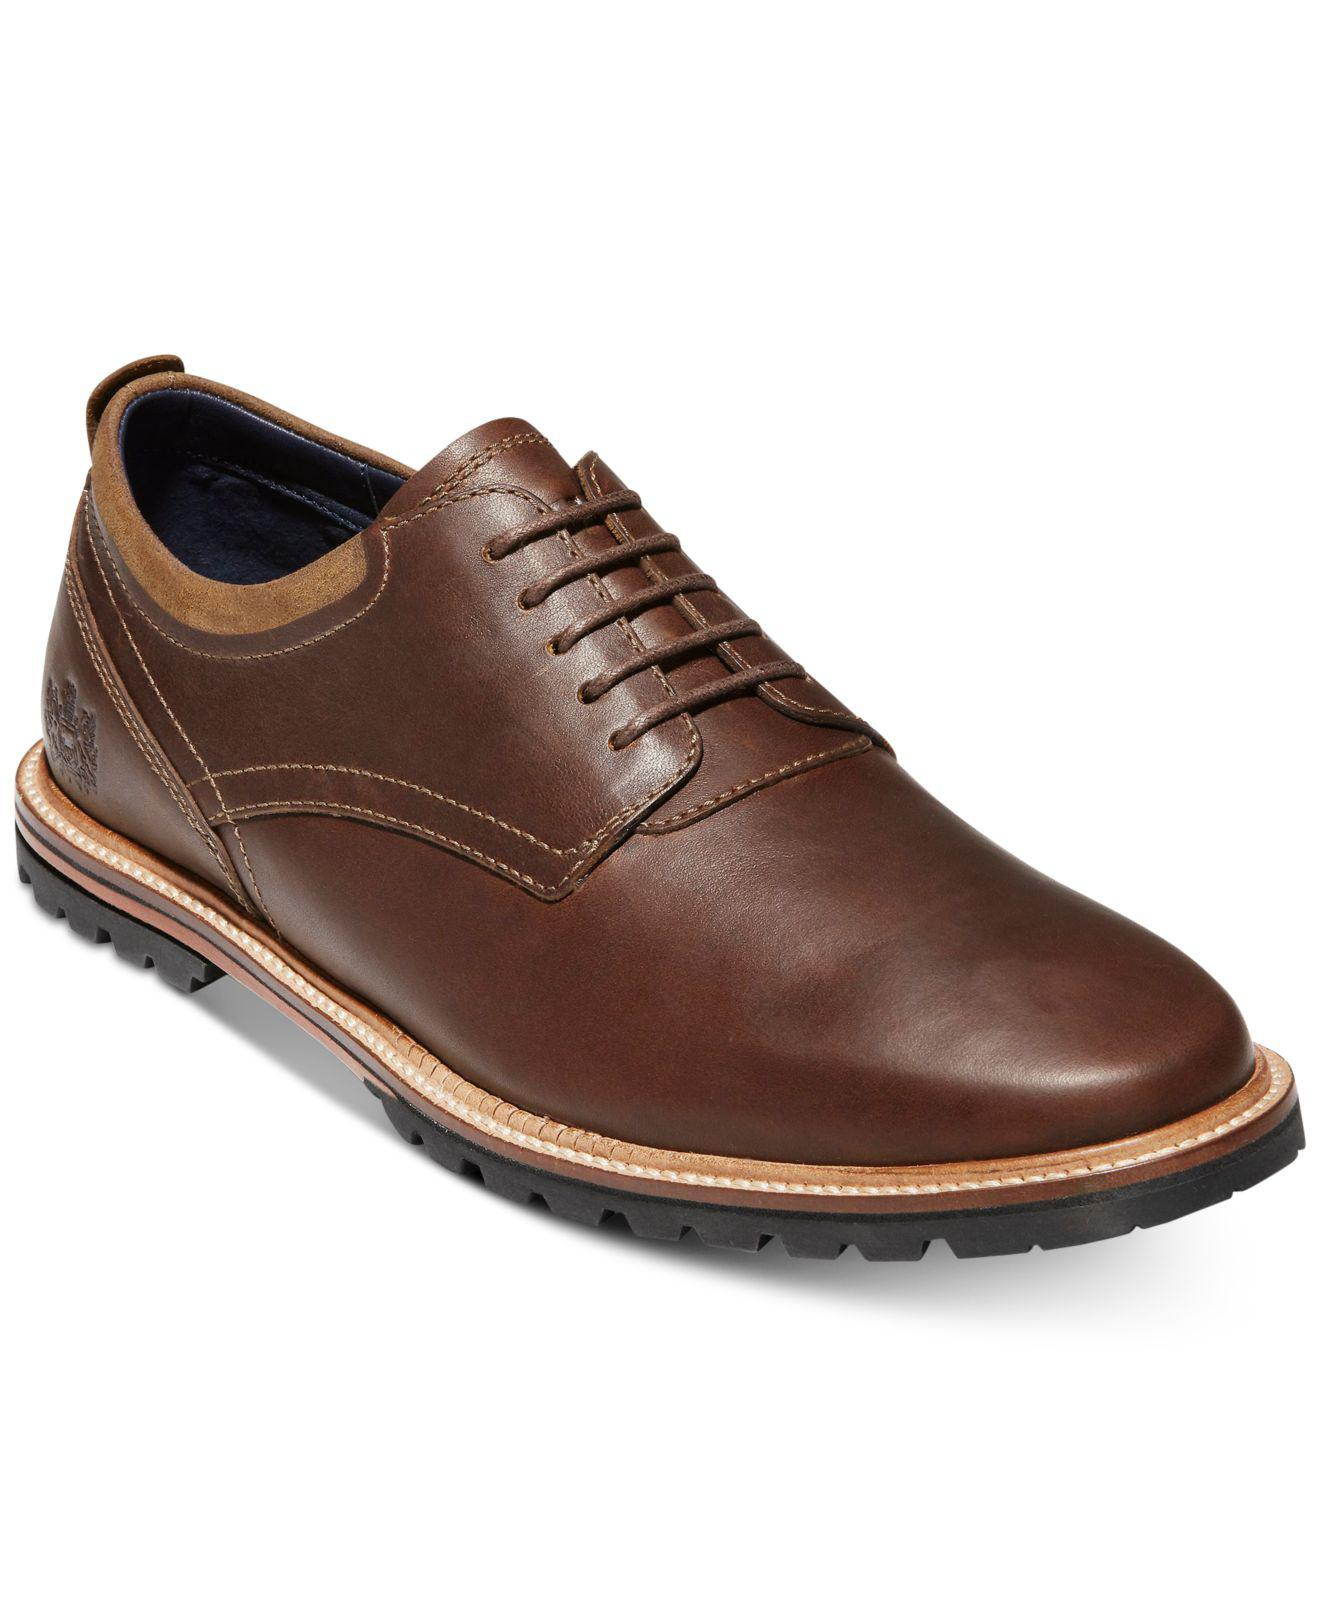 4fcfbd96024 Lyst - Cole Haan Ripley Grand Oxfords in Brown for Men